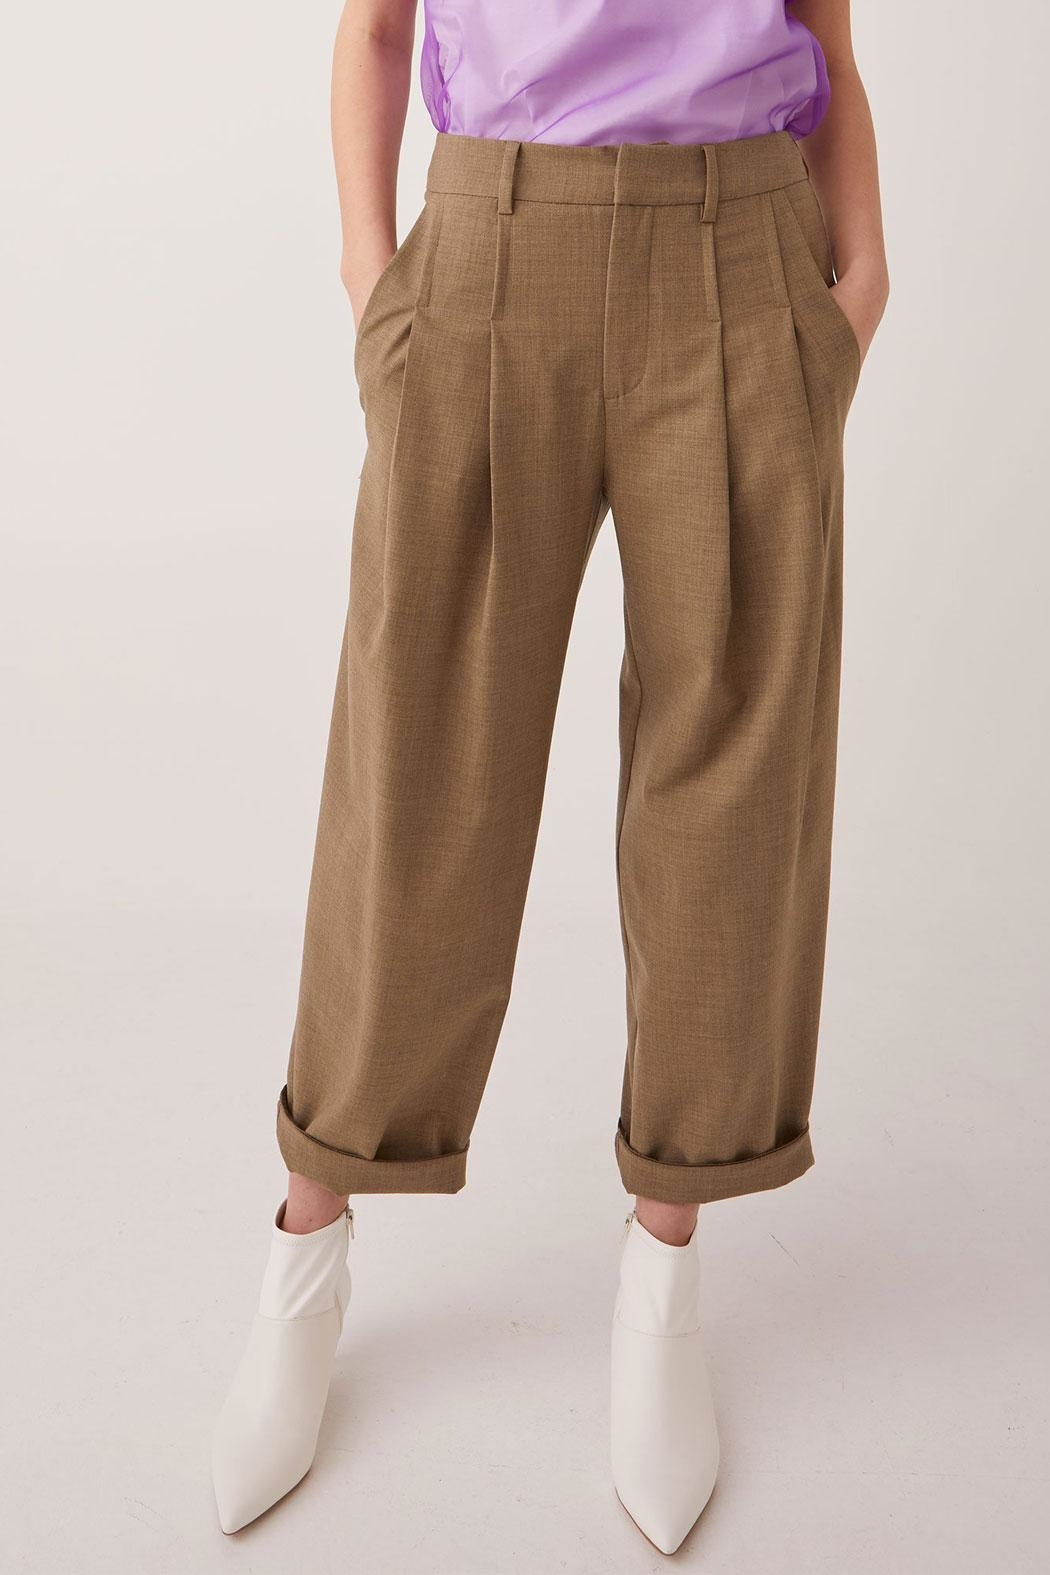 91664c01446c Ricochet Sapporo Pant from New Zealand by Camerons — Shoptiques